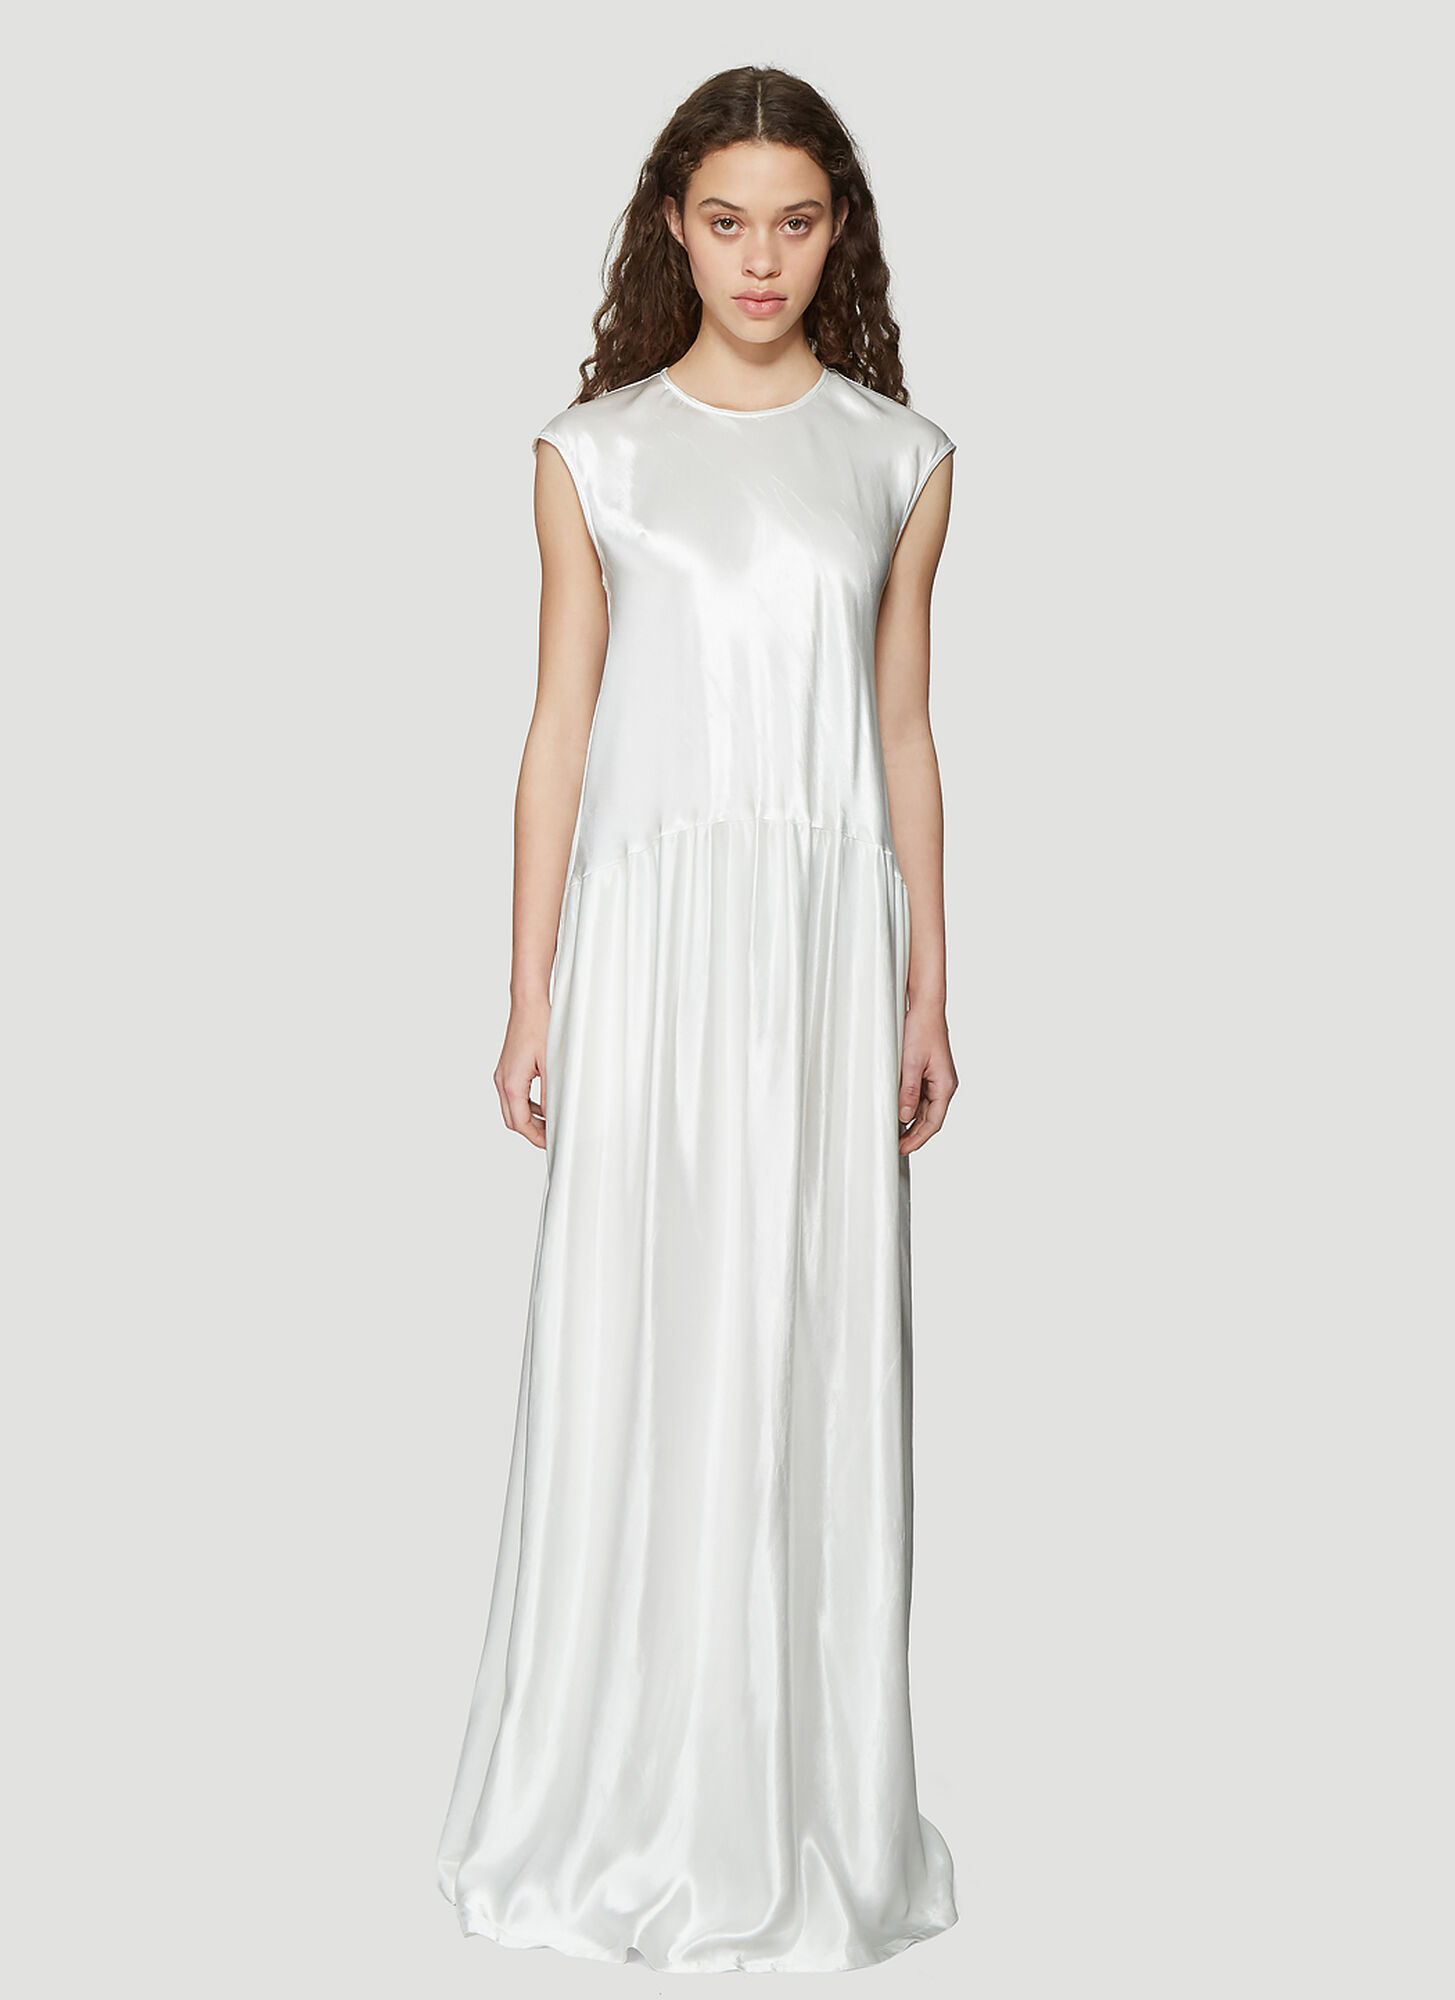 Photo of Sies Marjan Washed Satin Sleeveless Full length Dress in White - Sies Marjan Dresses